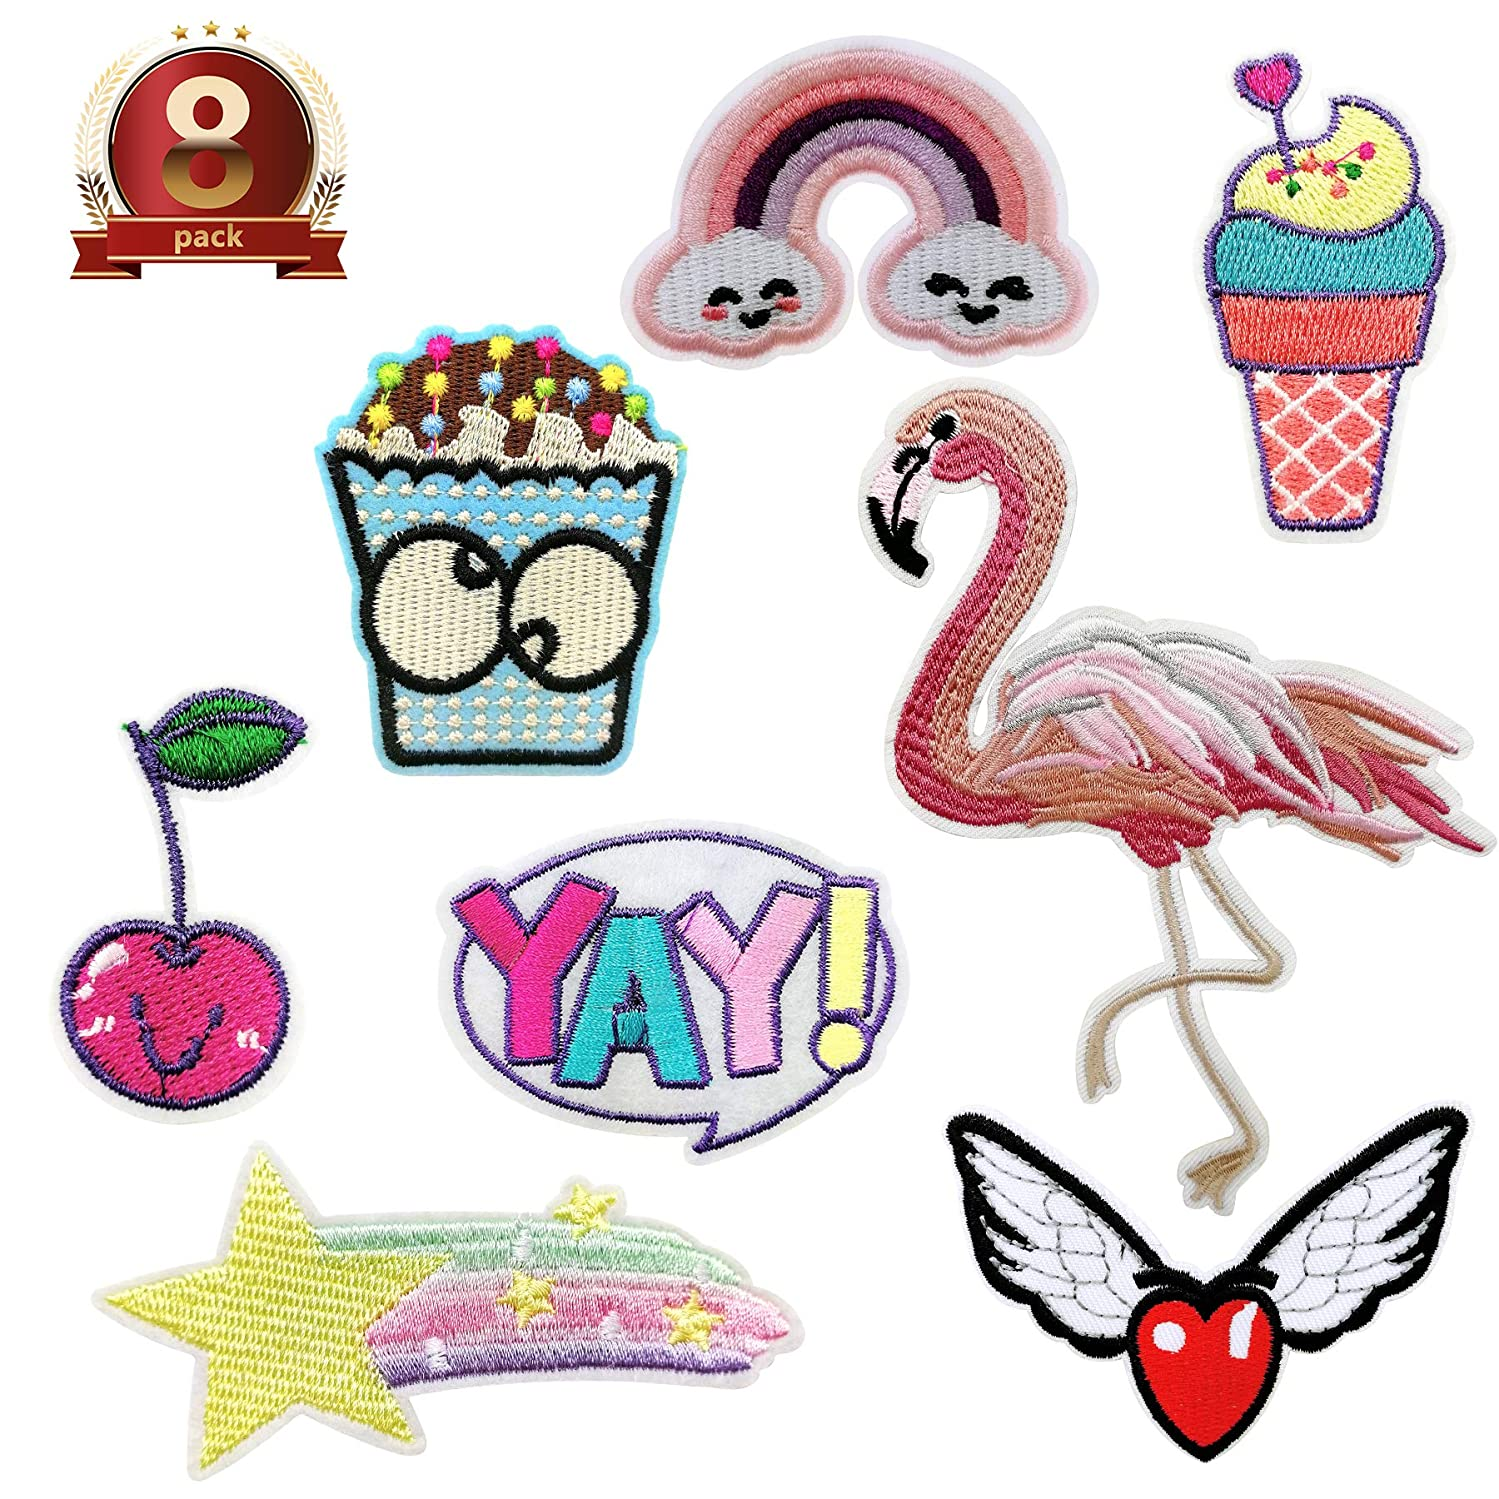 8PCS Iron-on Or Sew-on Embroidered Patches Applique Kit/Accessories for DIY Decoration Or Repair,Sew On Patches for Jeans Jacket, Clothing, Handbag, Shoes,Backpacks Jeans Caps Shoes, Assorted Sizes